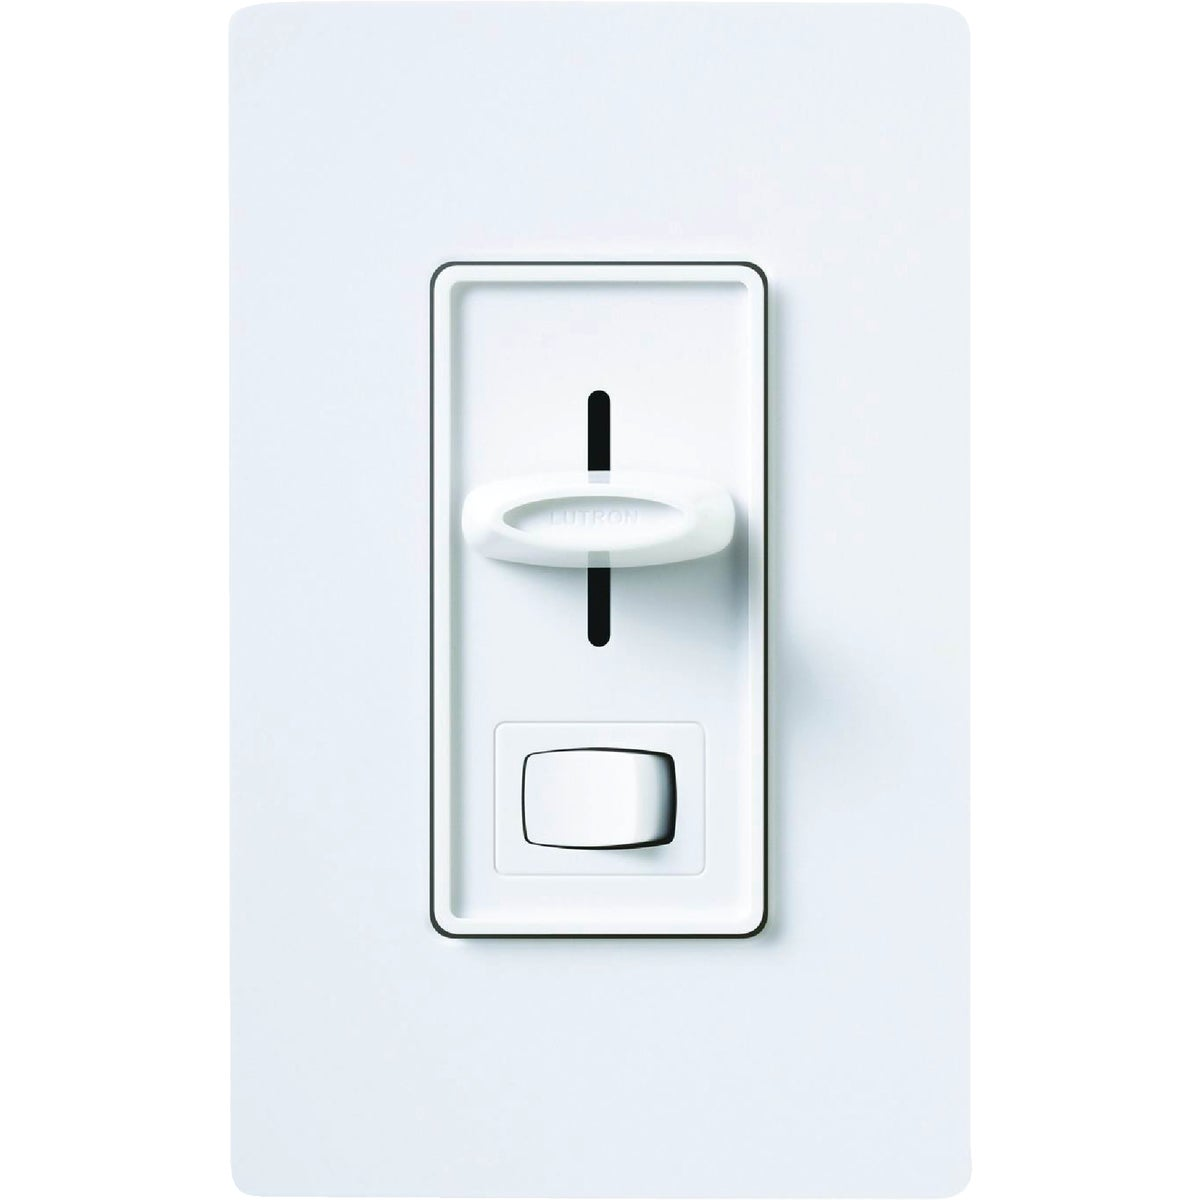 WH 3-WAY SLIDE DIMMER - S-603PGH-WH by Lutron Elect Co Inc